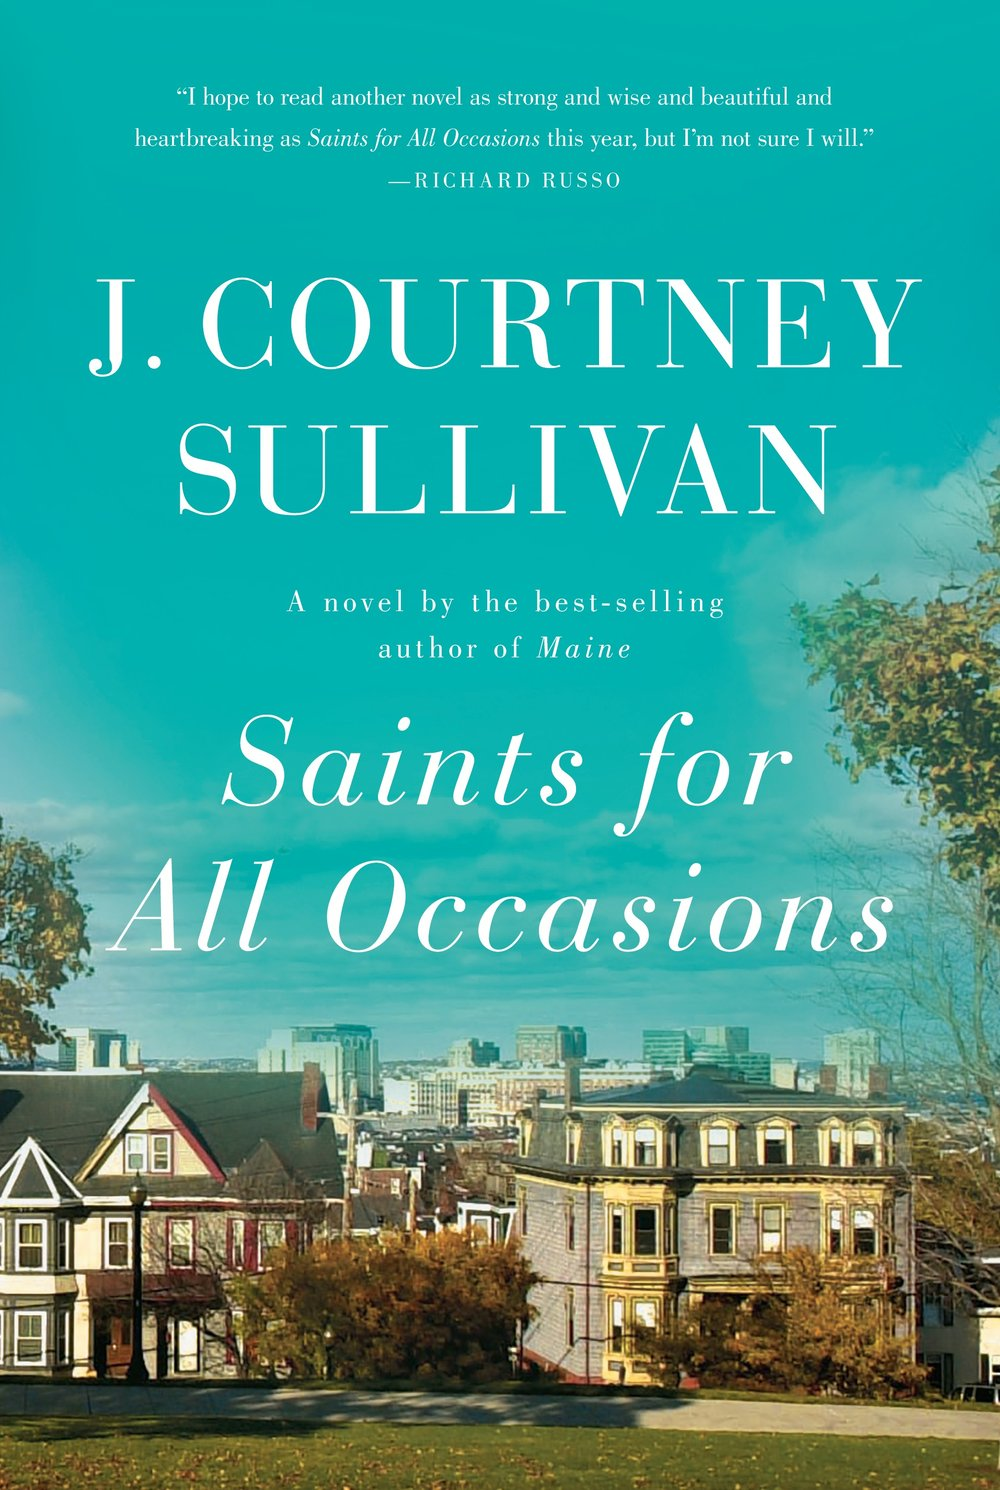 Saints_final cover copy.jpg